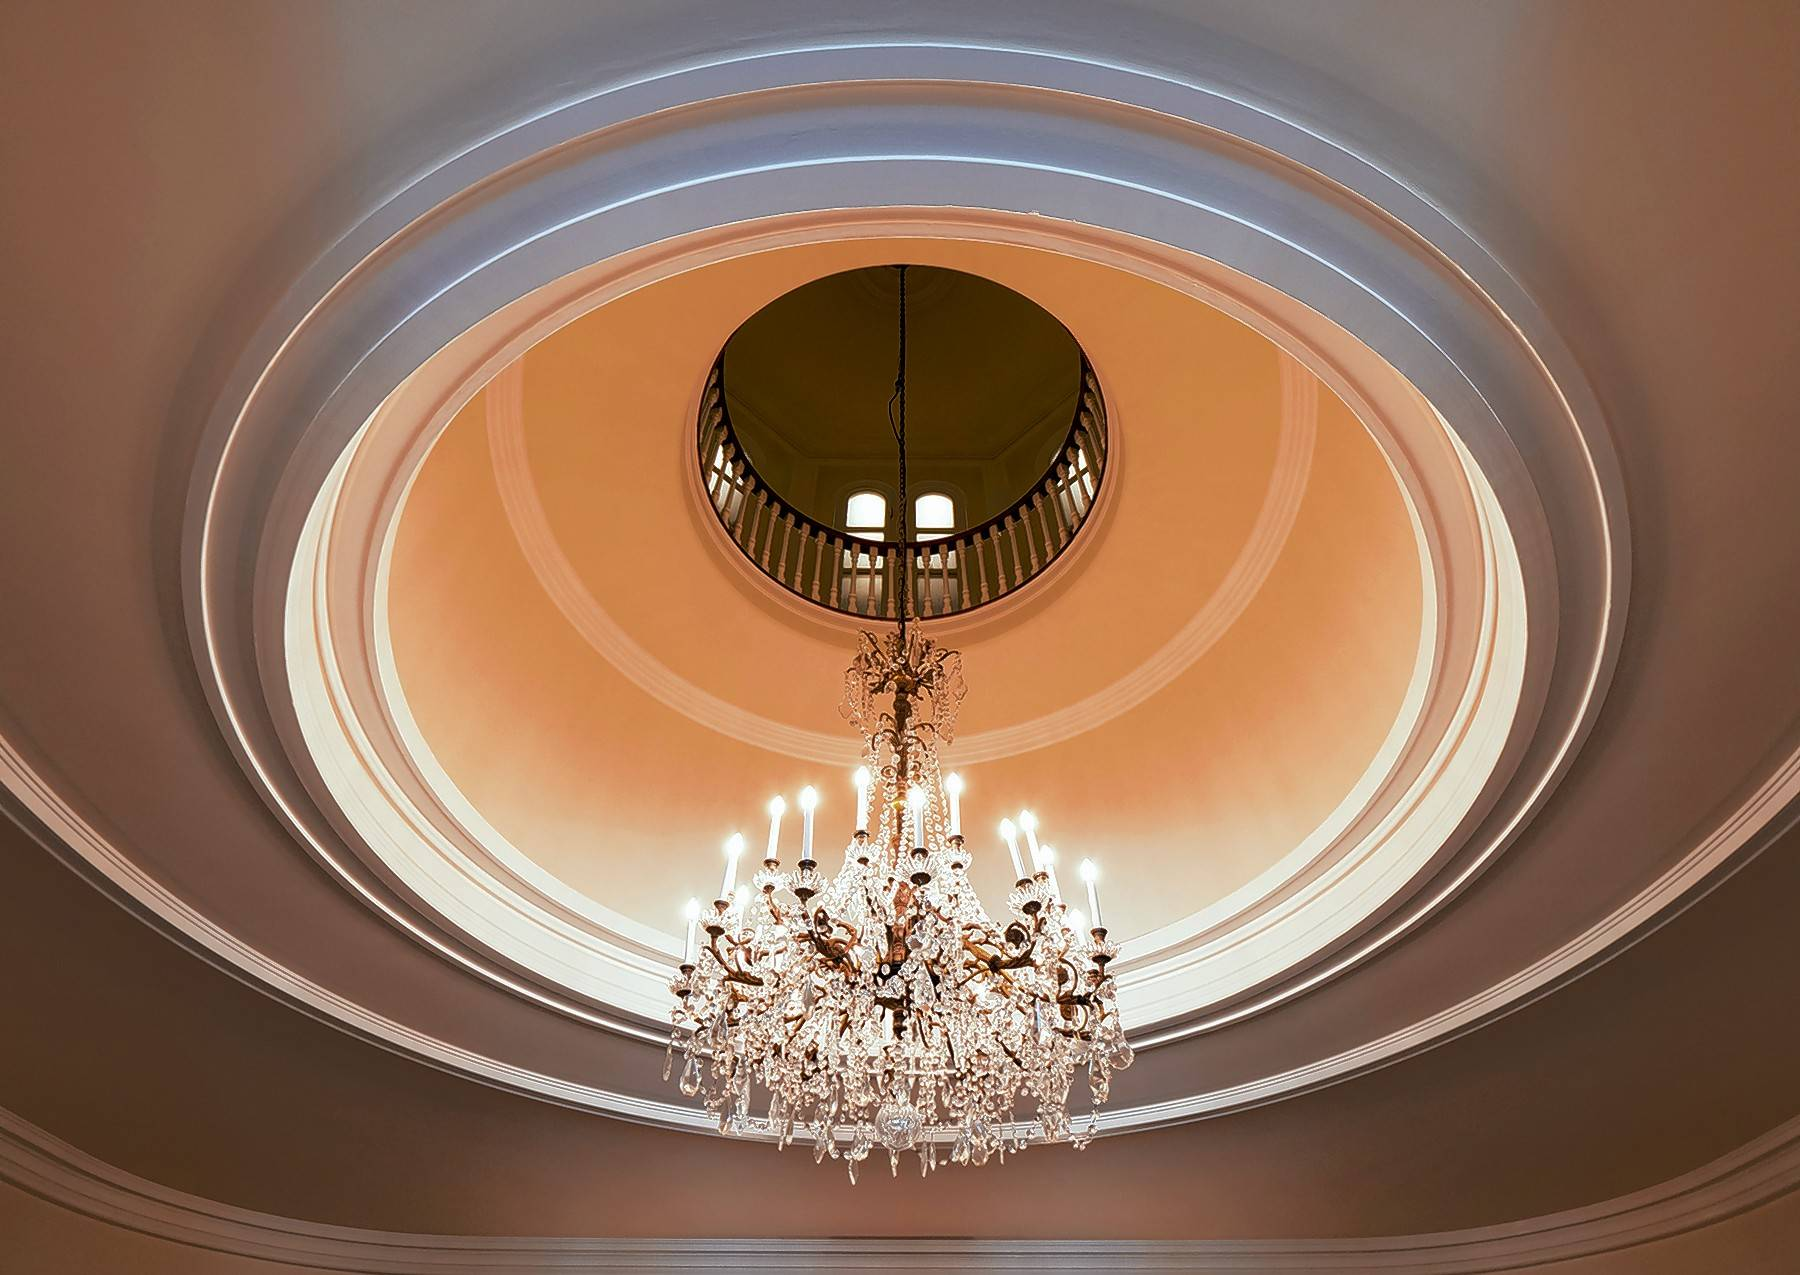 A chandelier at the top of the mansion's circular staircase.